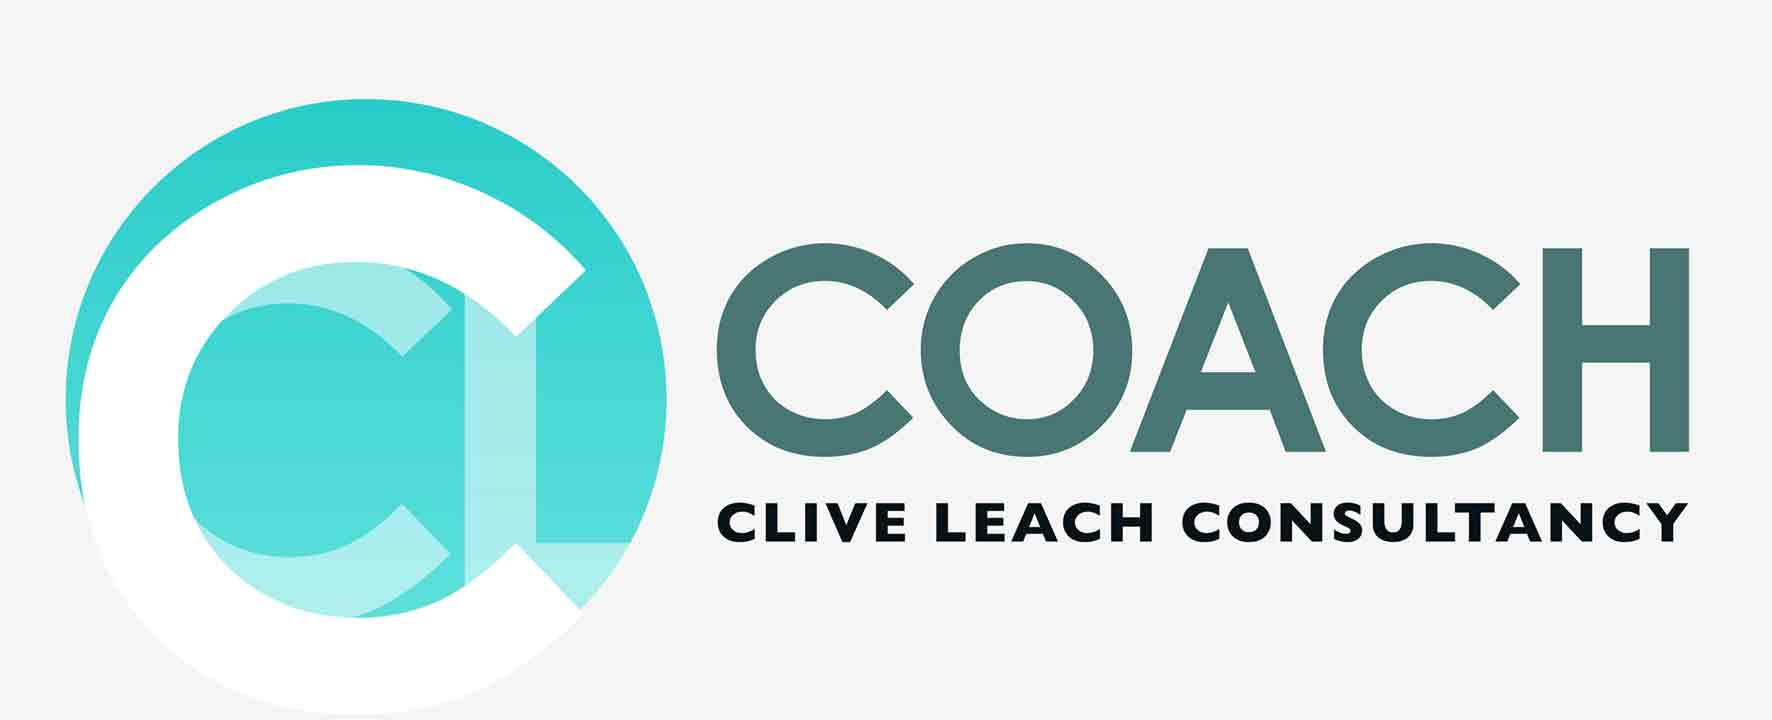 Clive Leach Consultancy